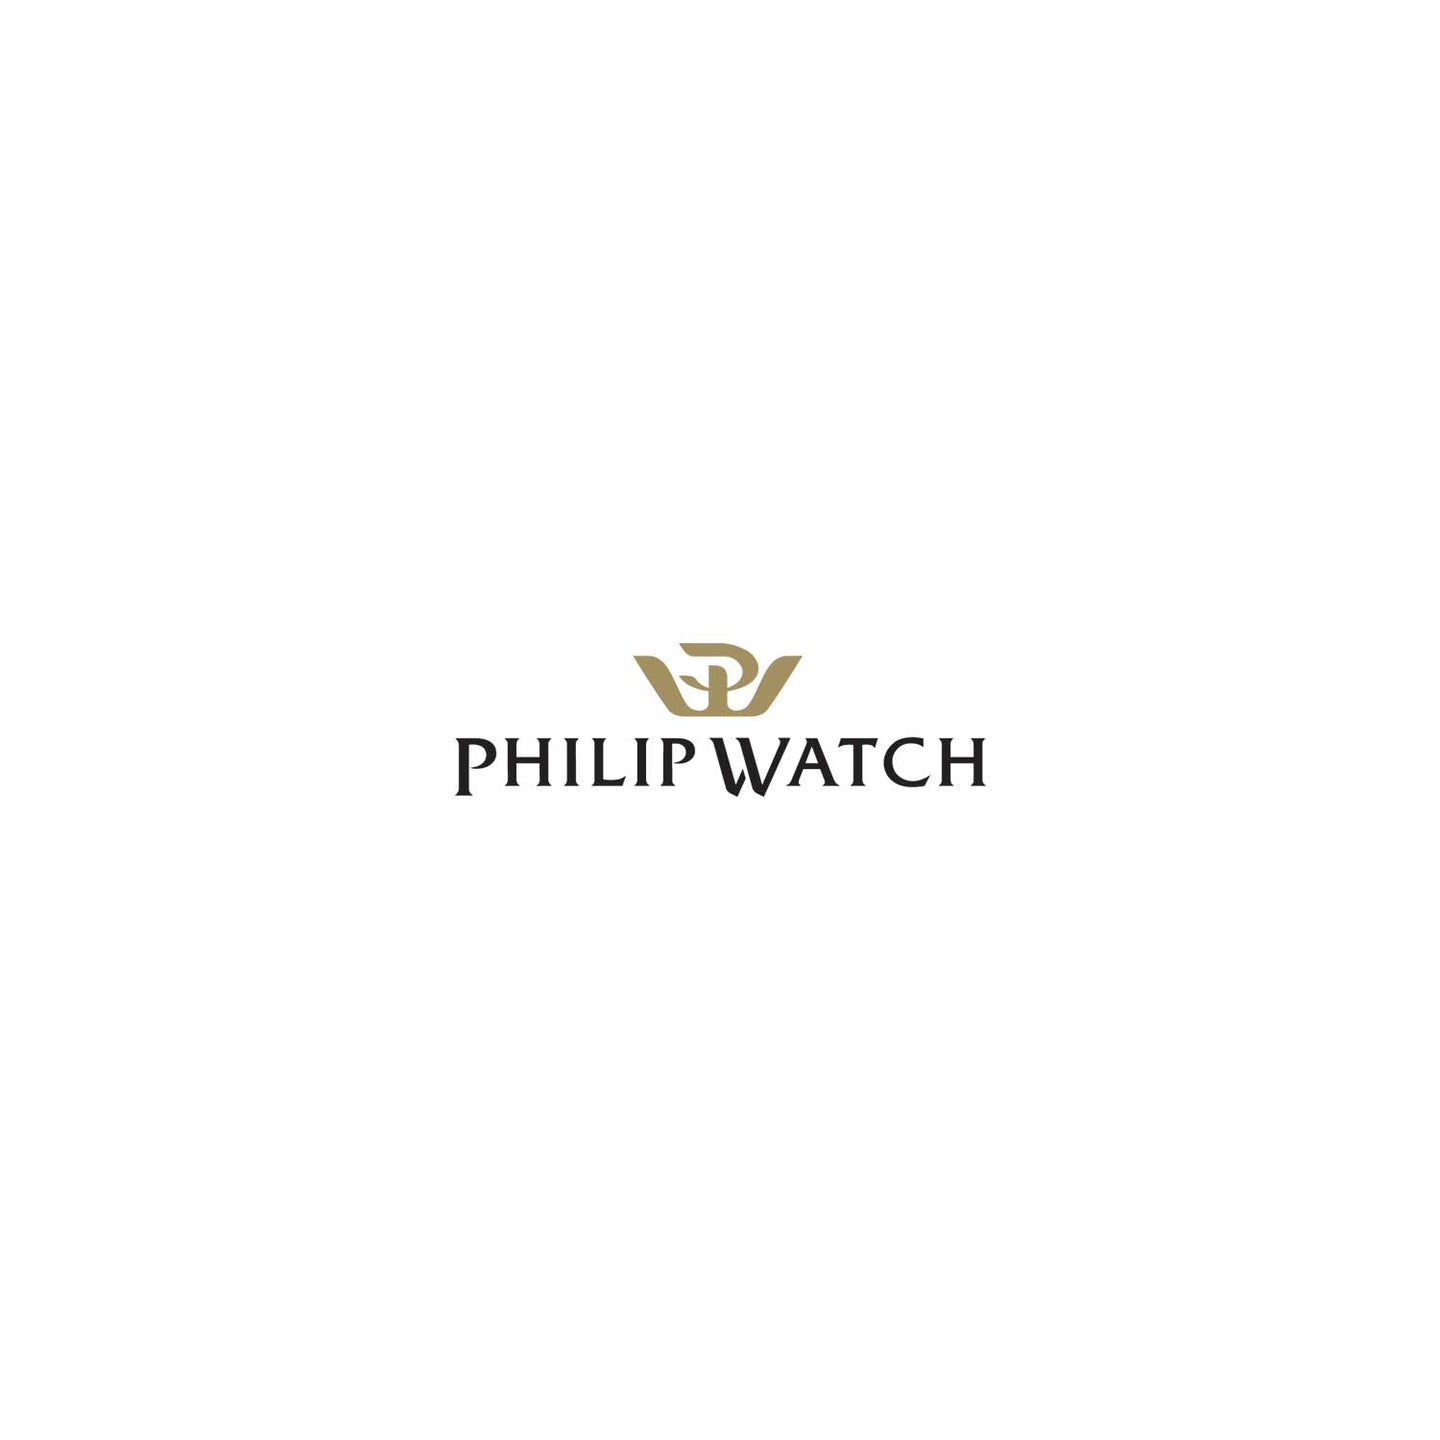 Philip Watch Orologi